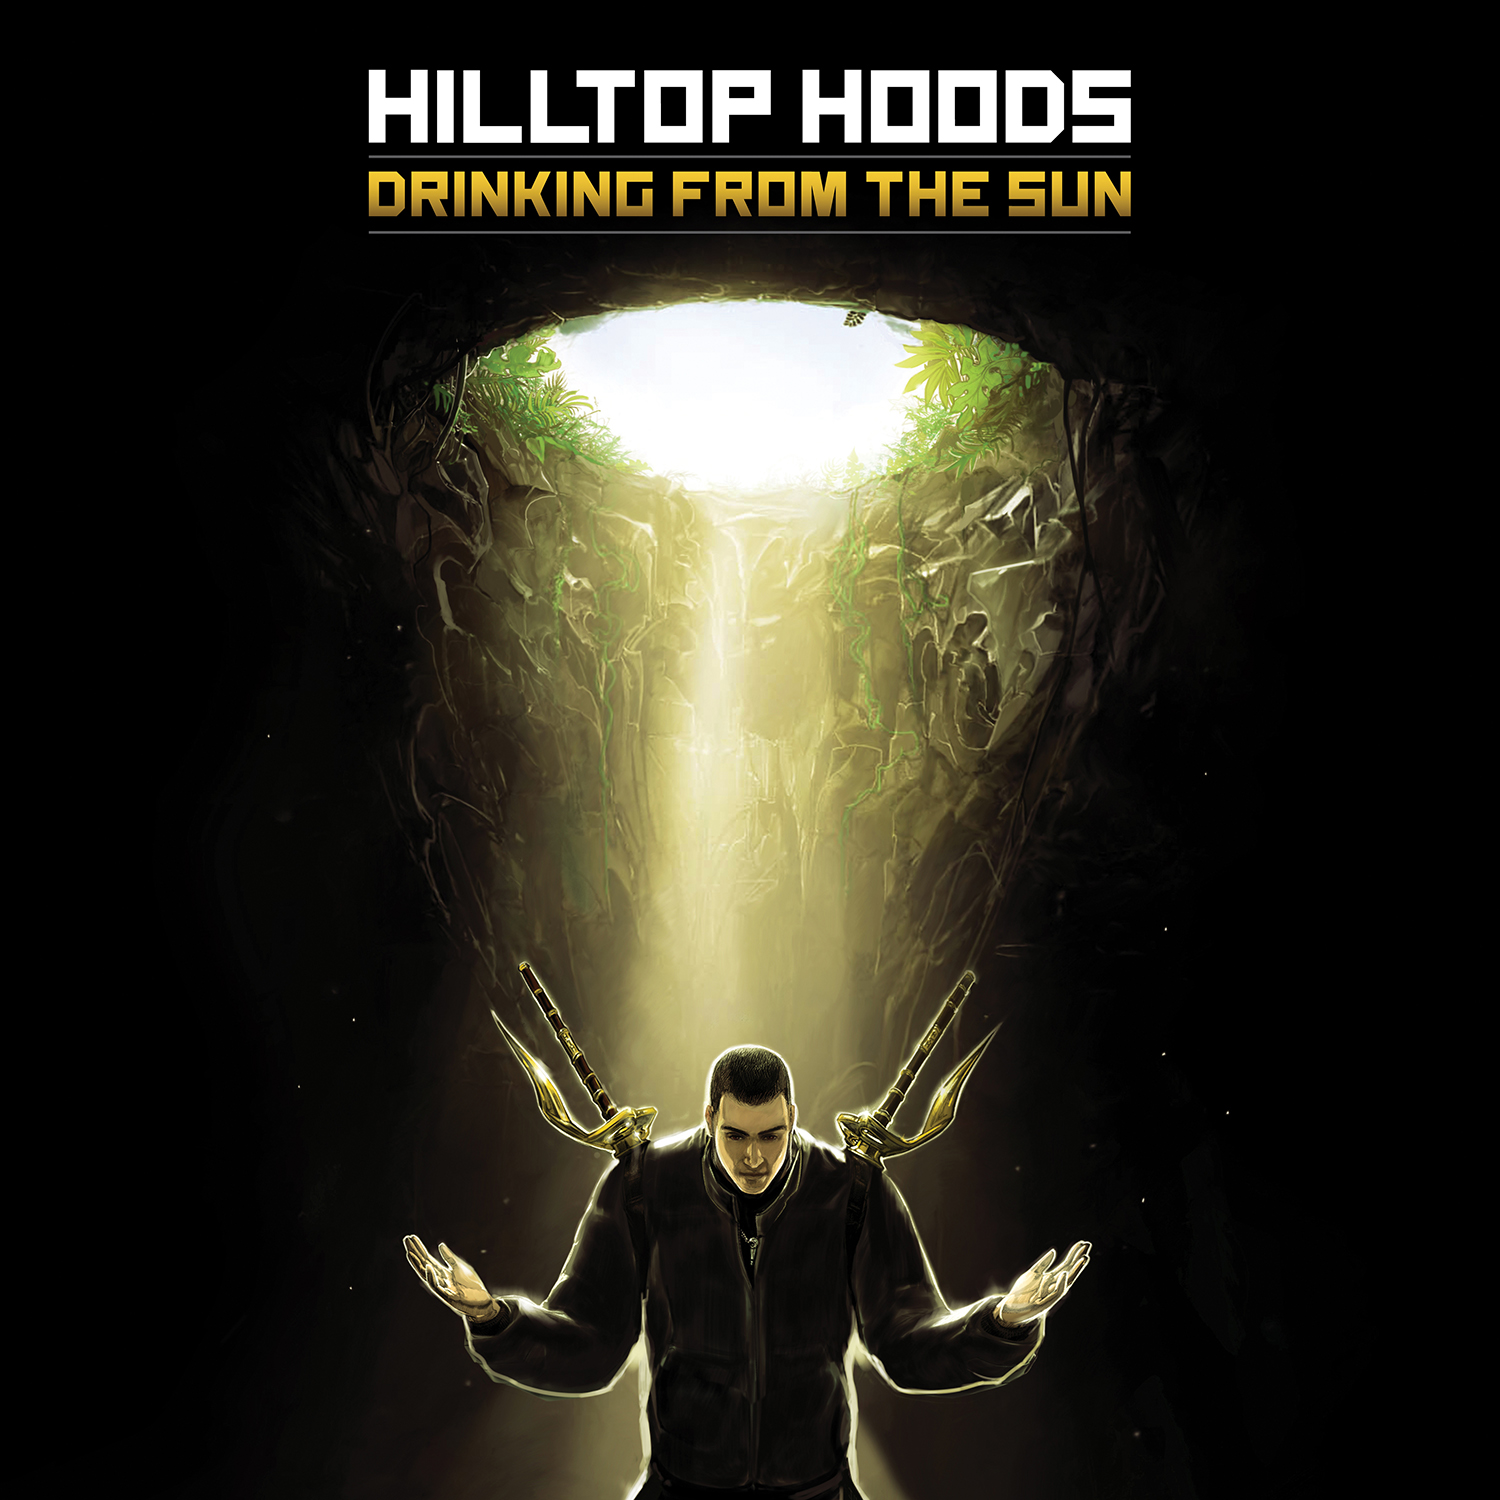 HILLTOP HOODS: DRINKING FROM THE SUN